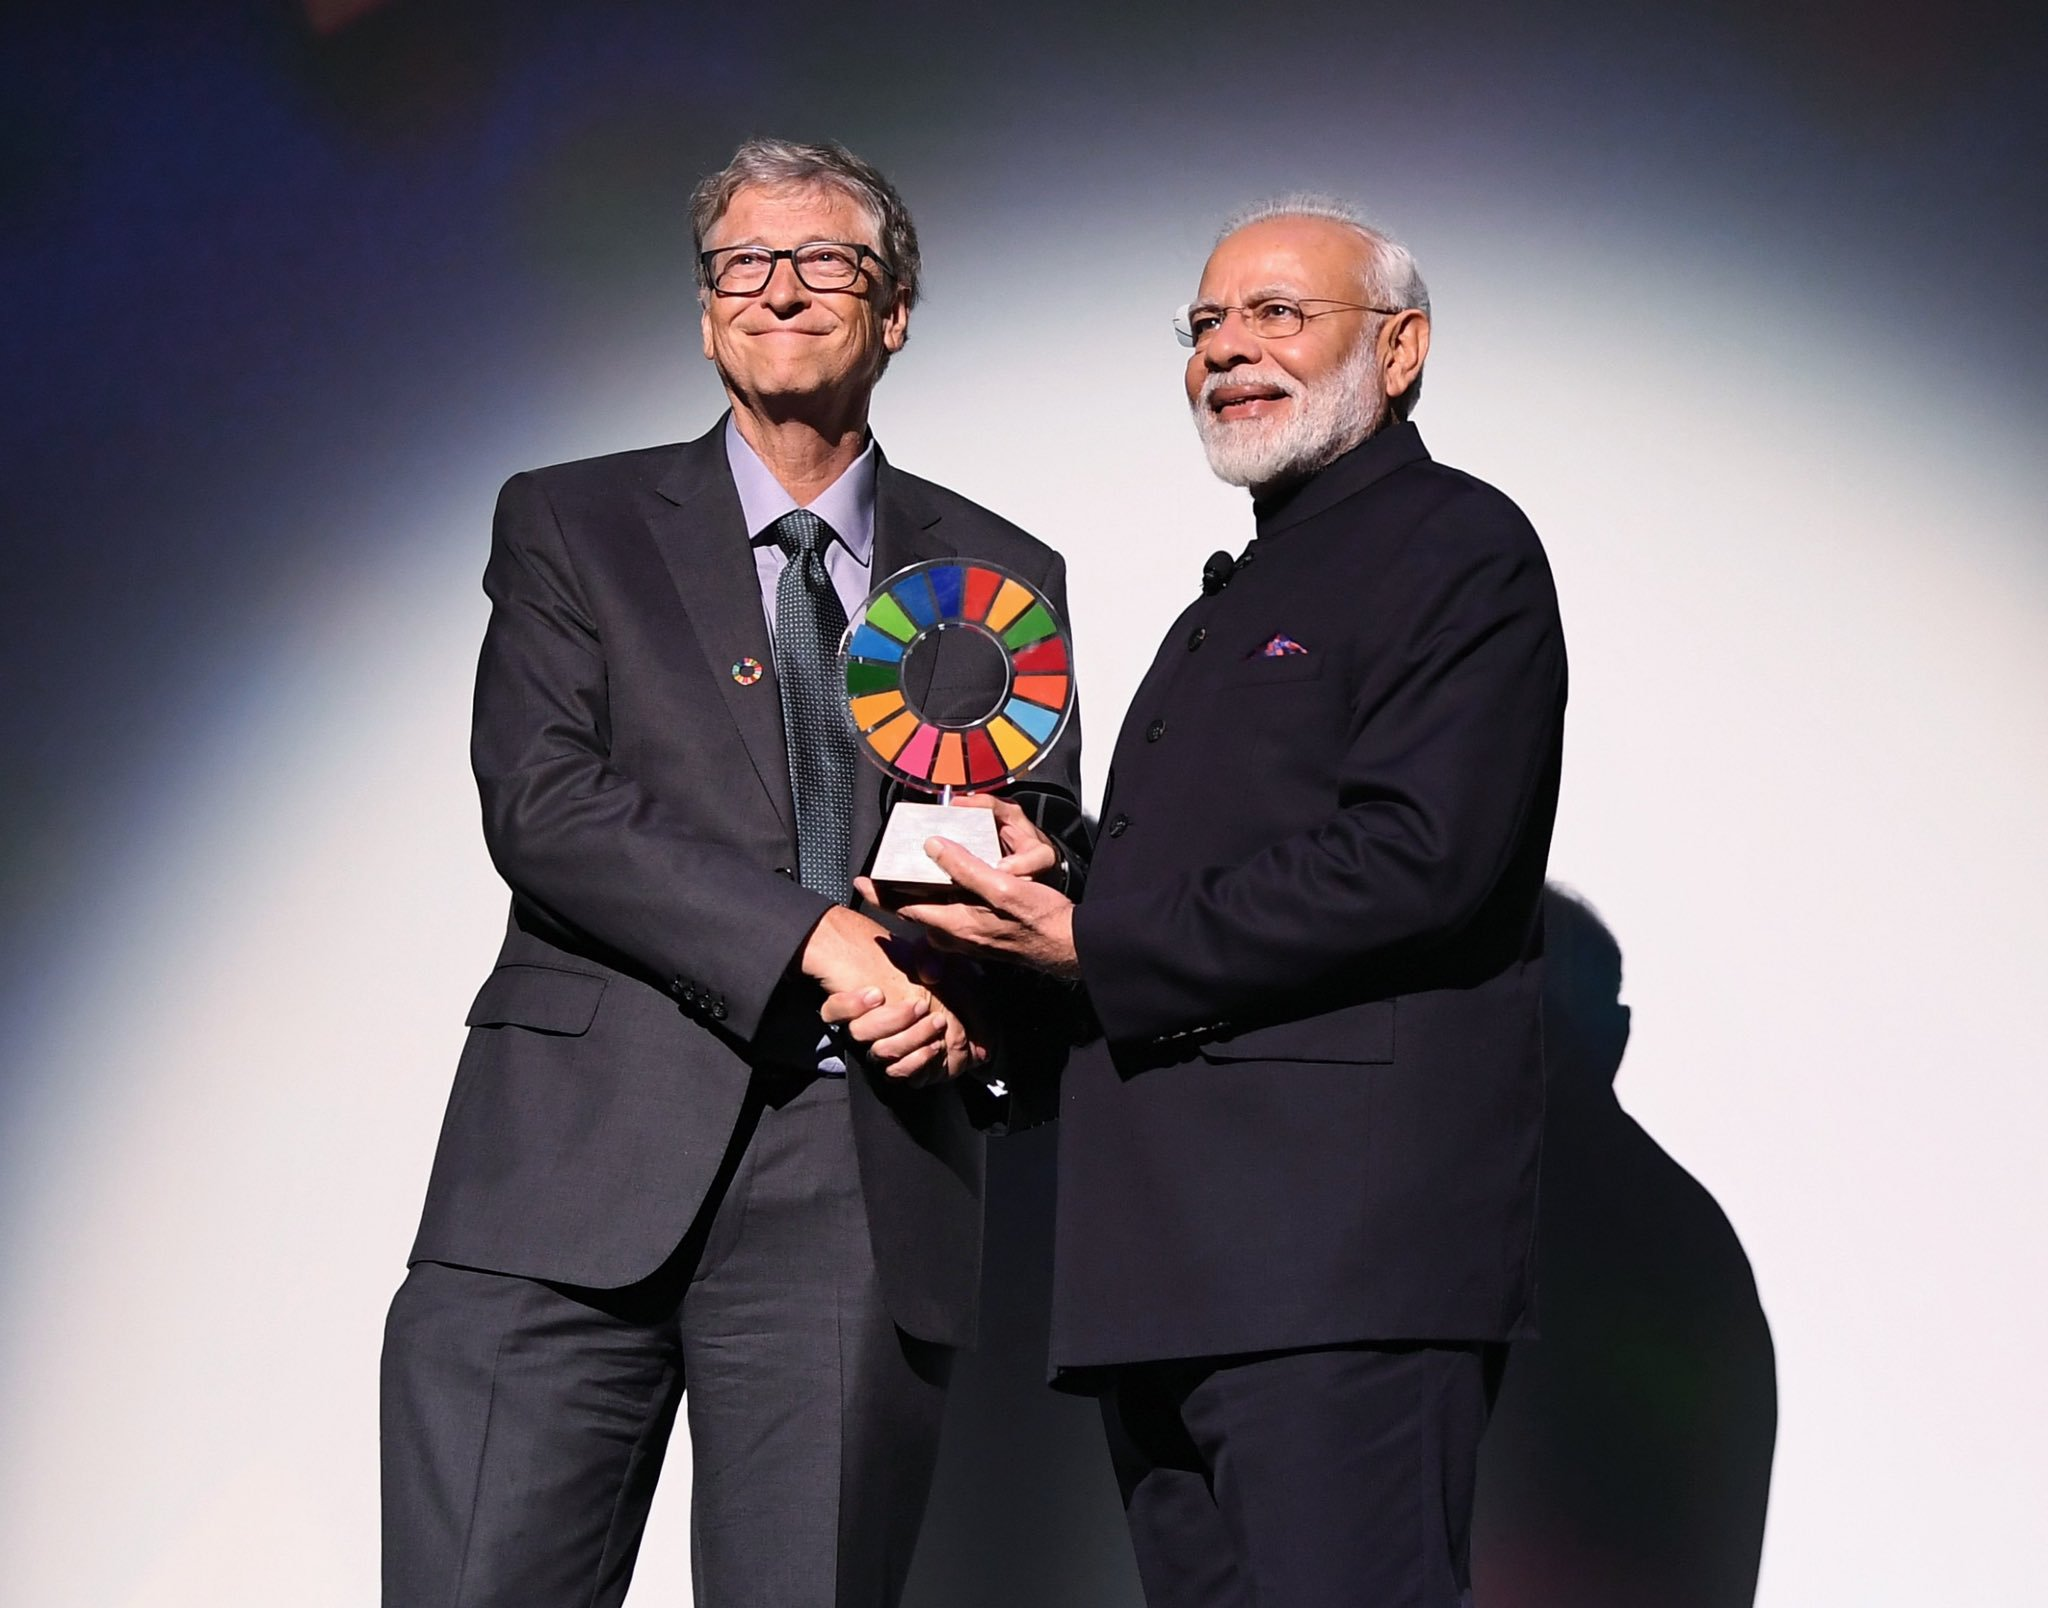 Narendra Modi receiving the Goalkeepers Global Goals Award from Bill Gates. Photo courtesy: Twitter/@narendramodi